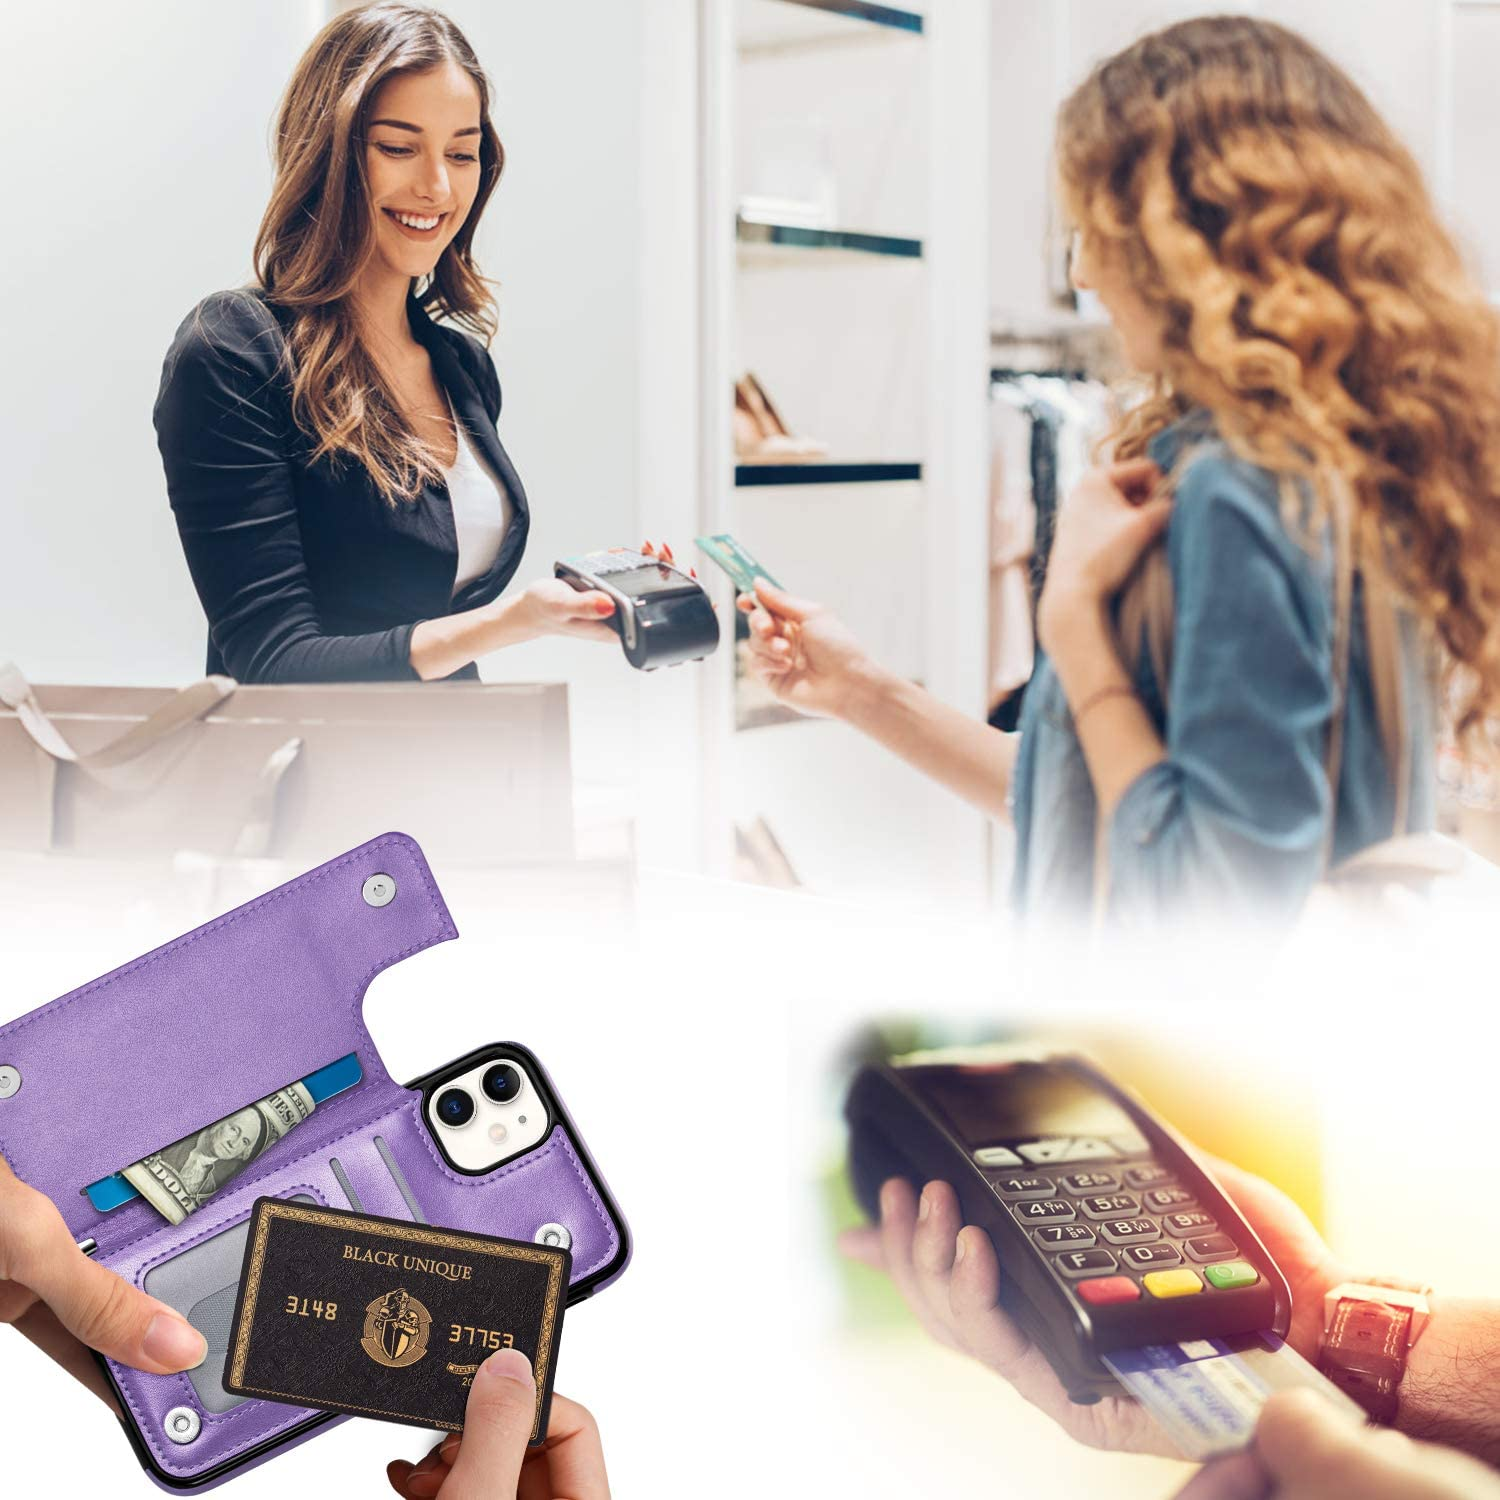 Purple Aoksow iPhone 11 Wallet Case Soft PU Leather Case with Card Holder Kickstand Shockproof Slim Protective Flip Cover for iPhone 11 6.1 Inch